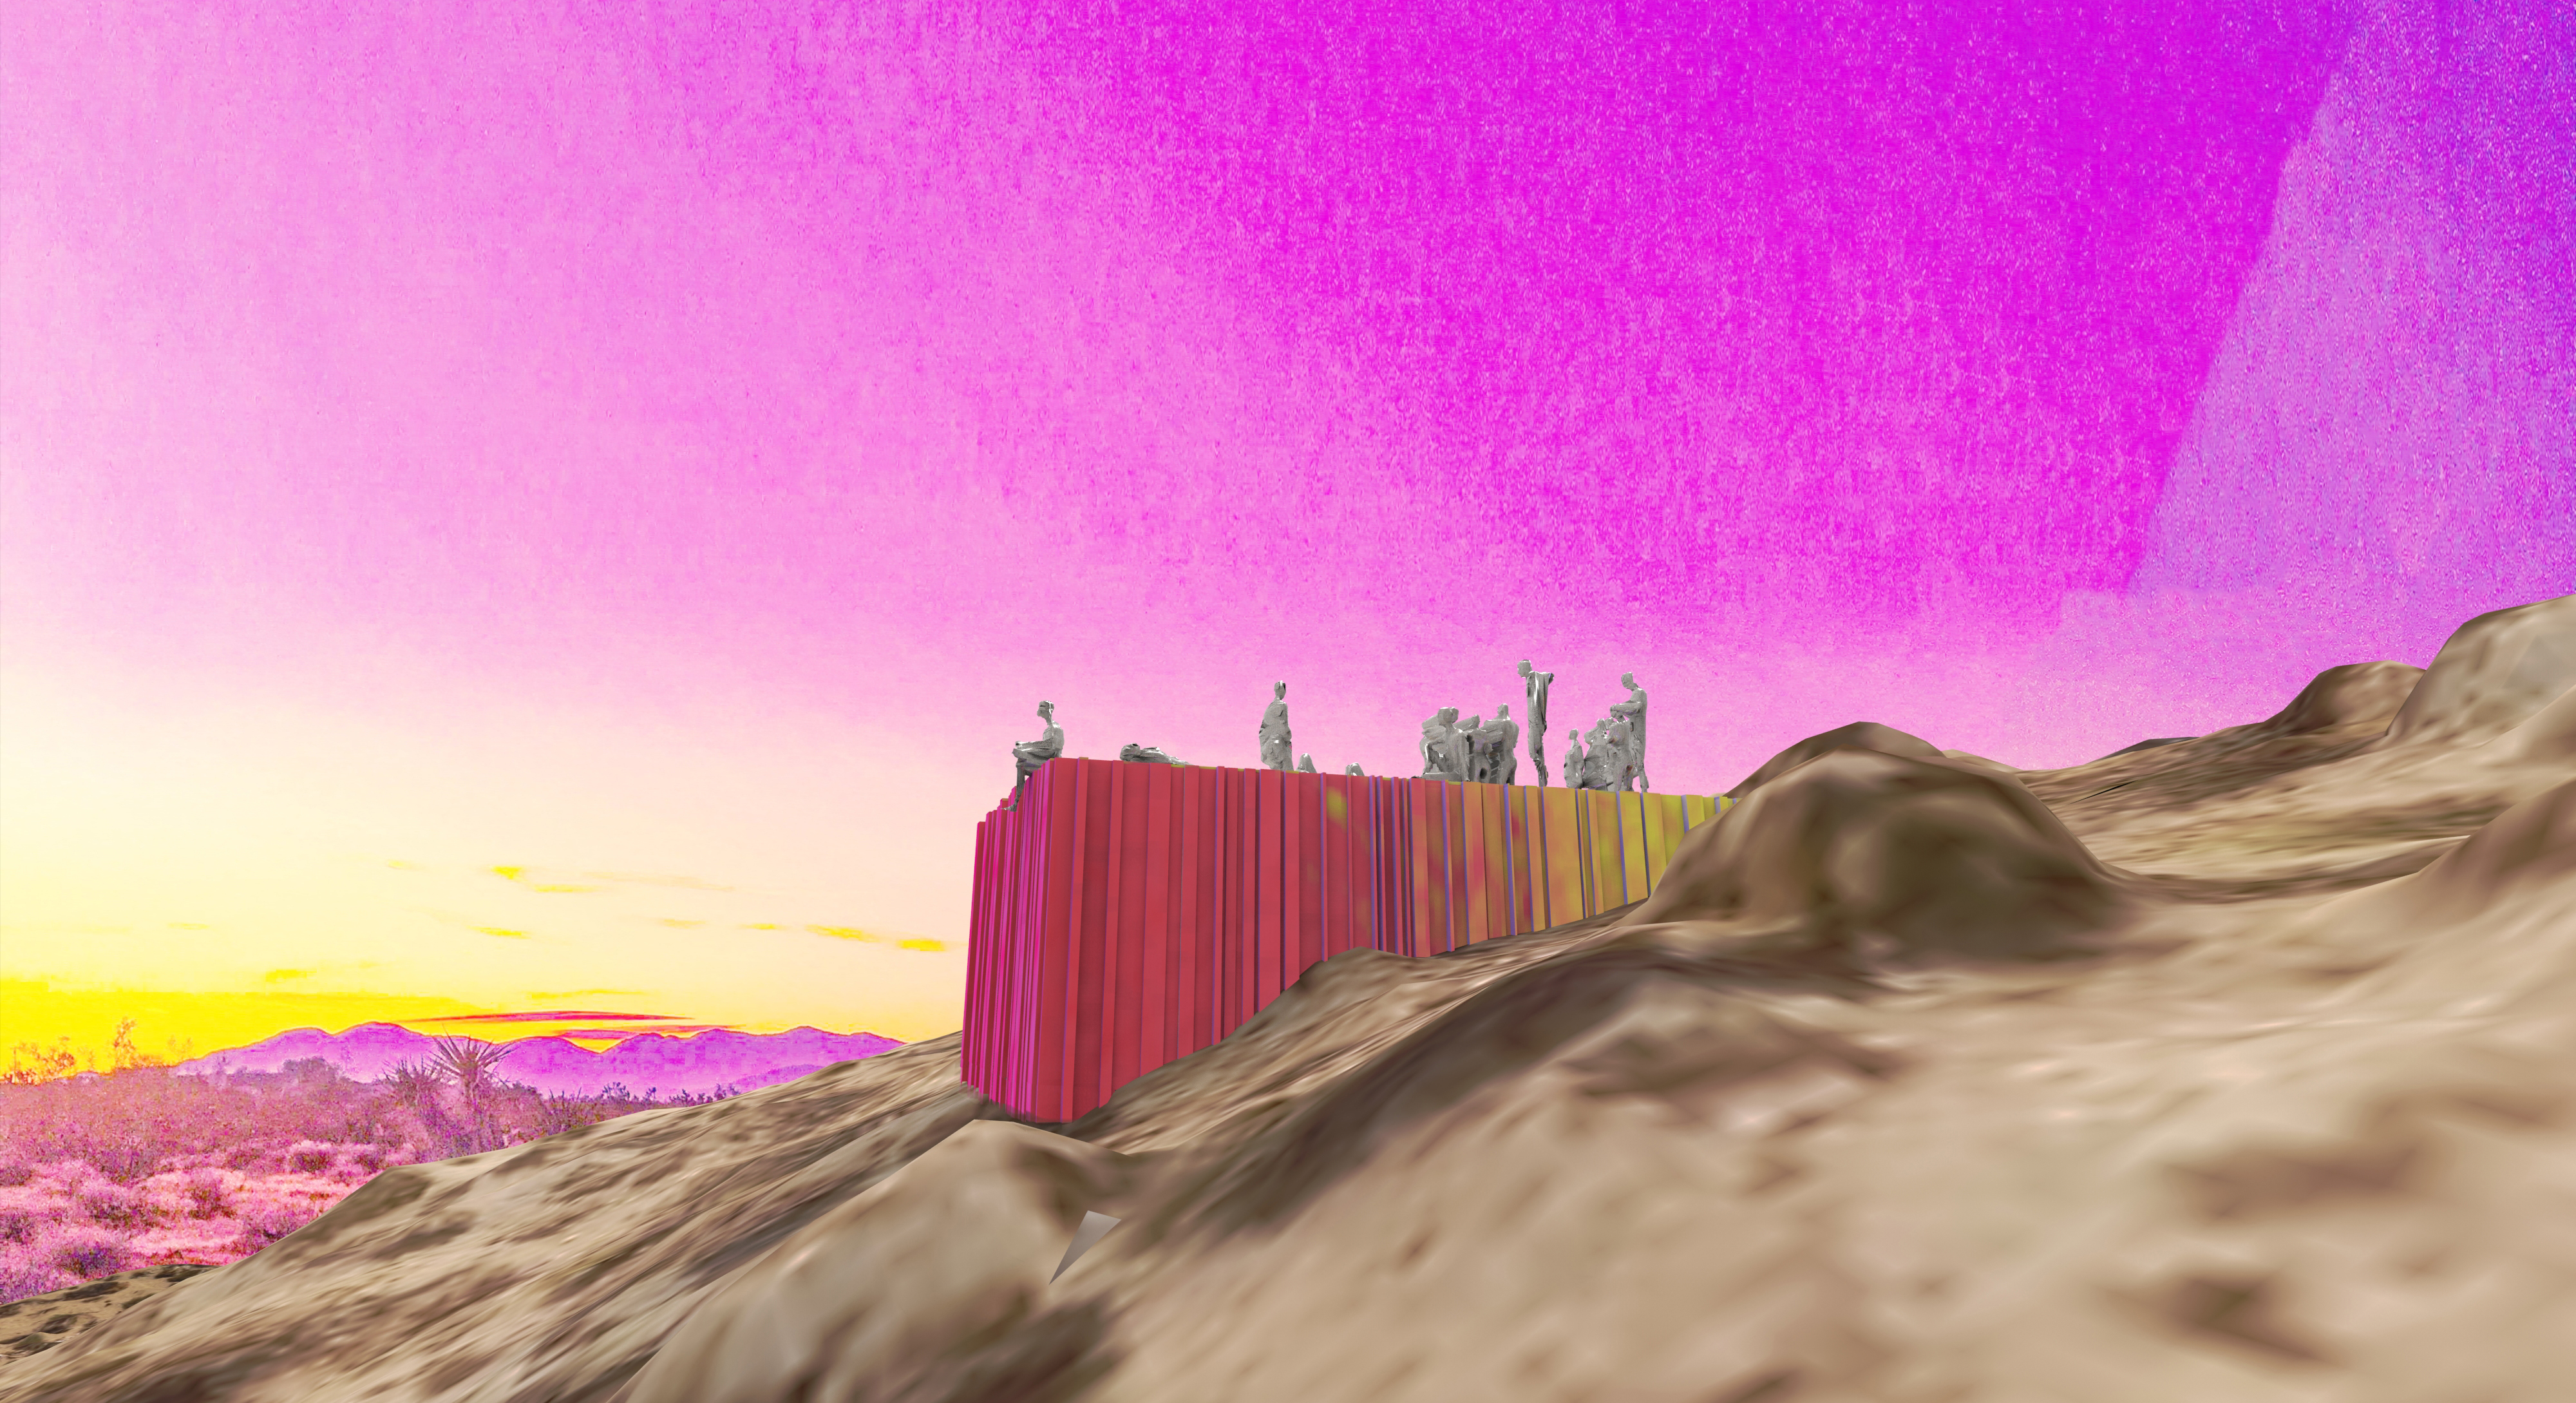 digitally produced dystopic desertscape corrugated metal box